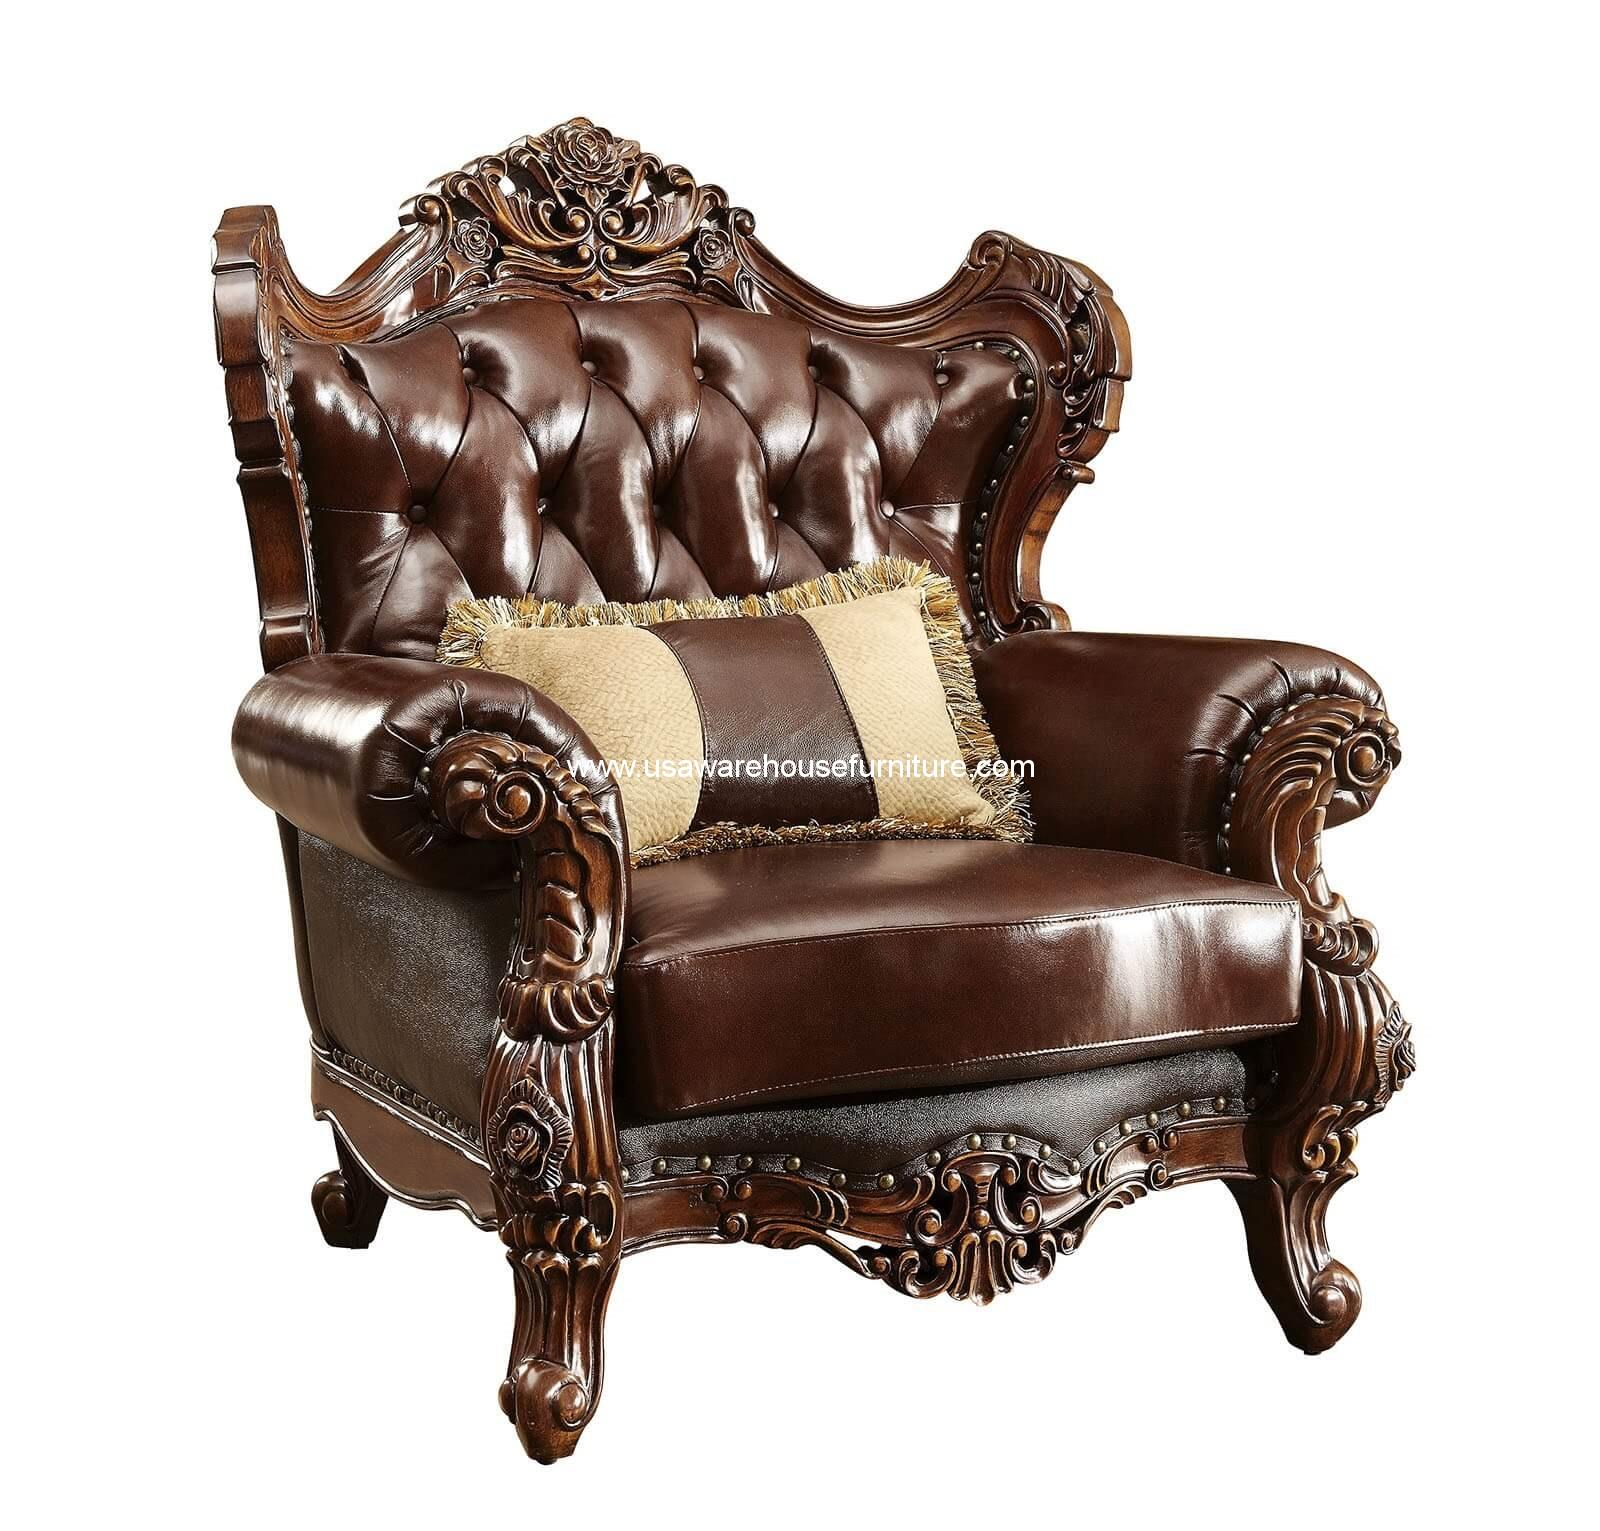 jericho wood trim leather chair dark oak finish usa warehouse furniture. Black Bedroom Furniture Sets. Home Design Ideas